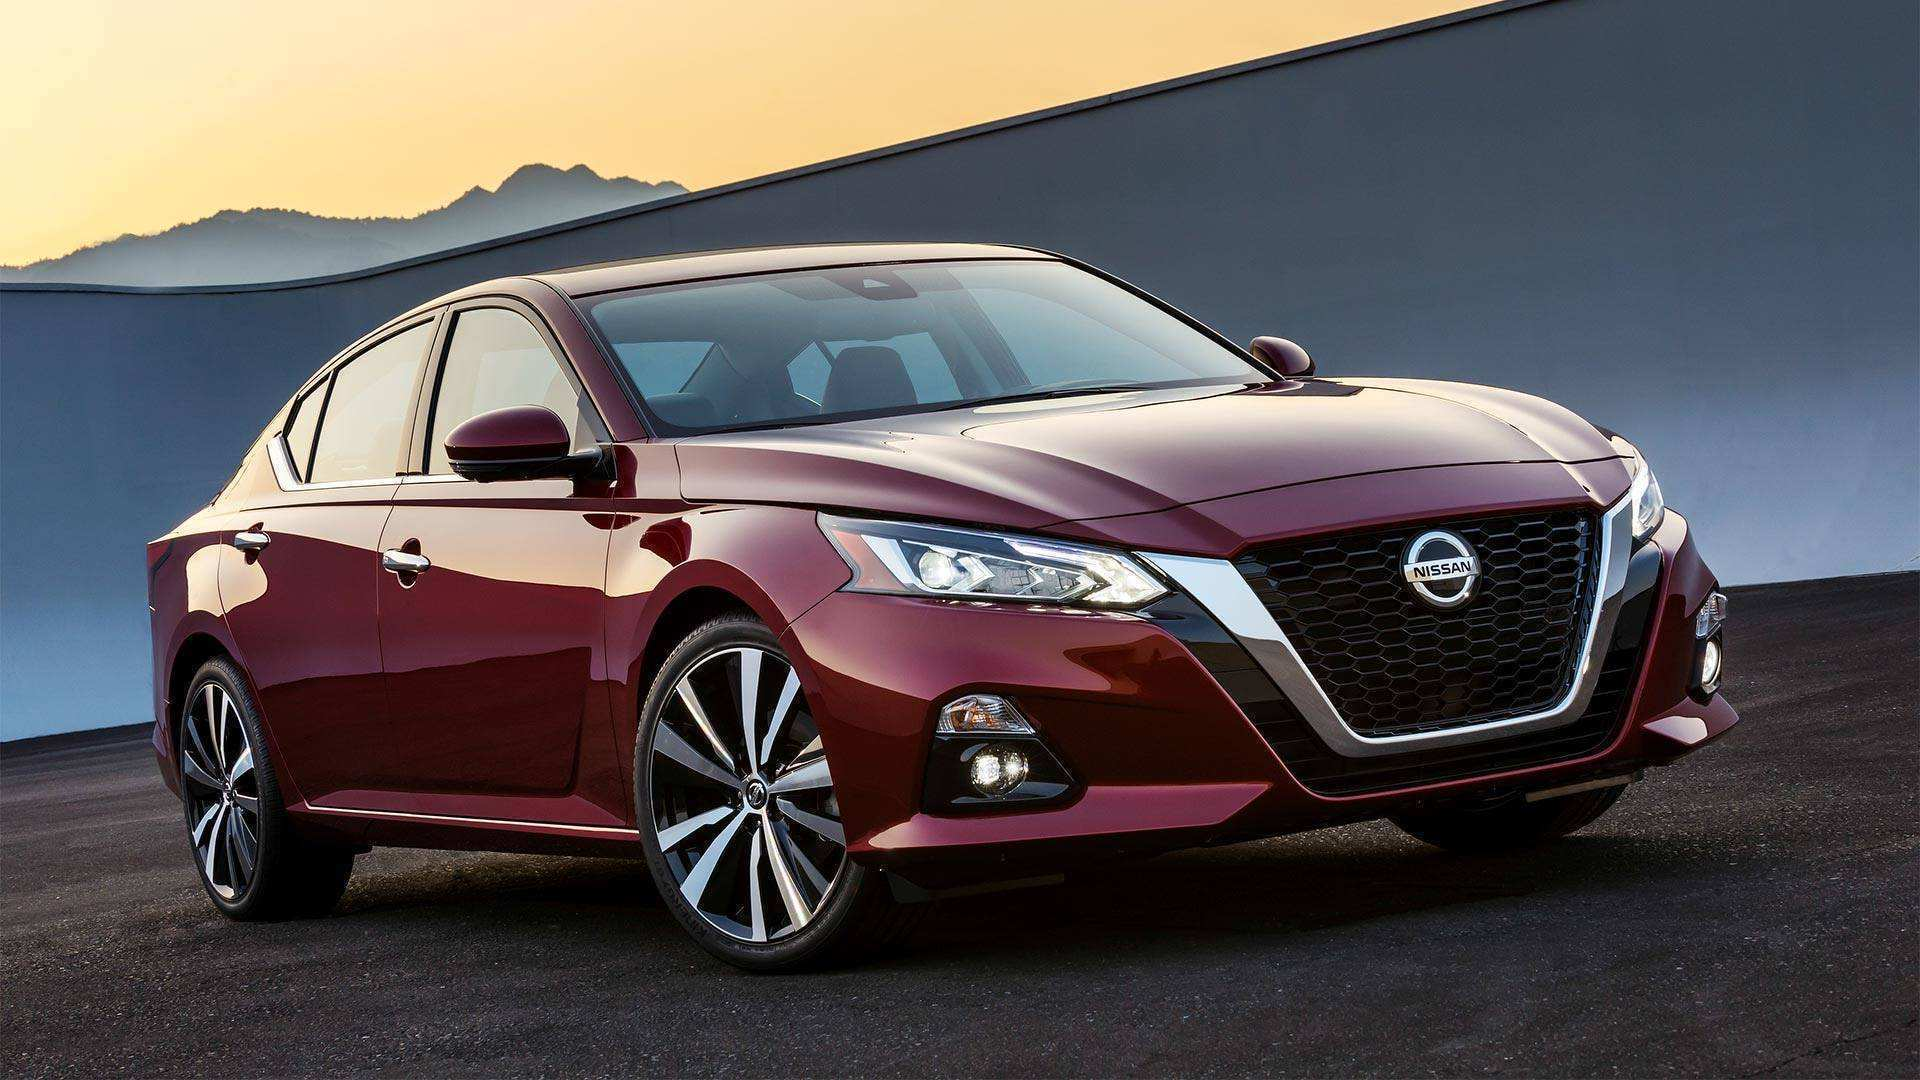 55 All New 2019 Nissan Altima Rendering Specs for 2019 Nissan Altima Rendering